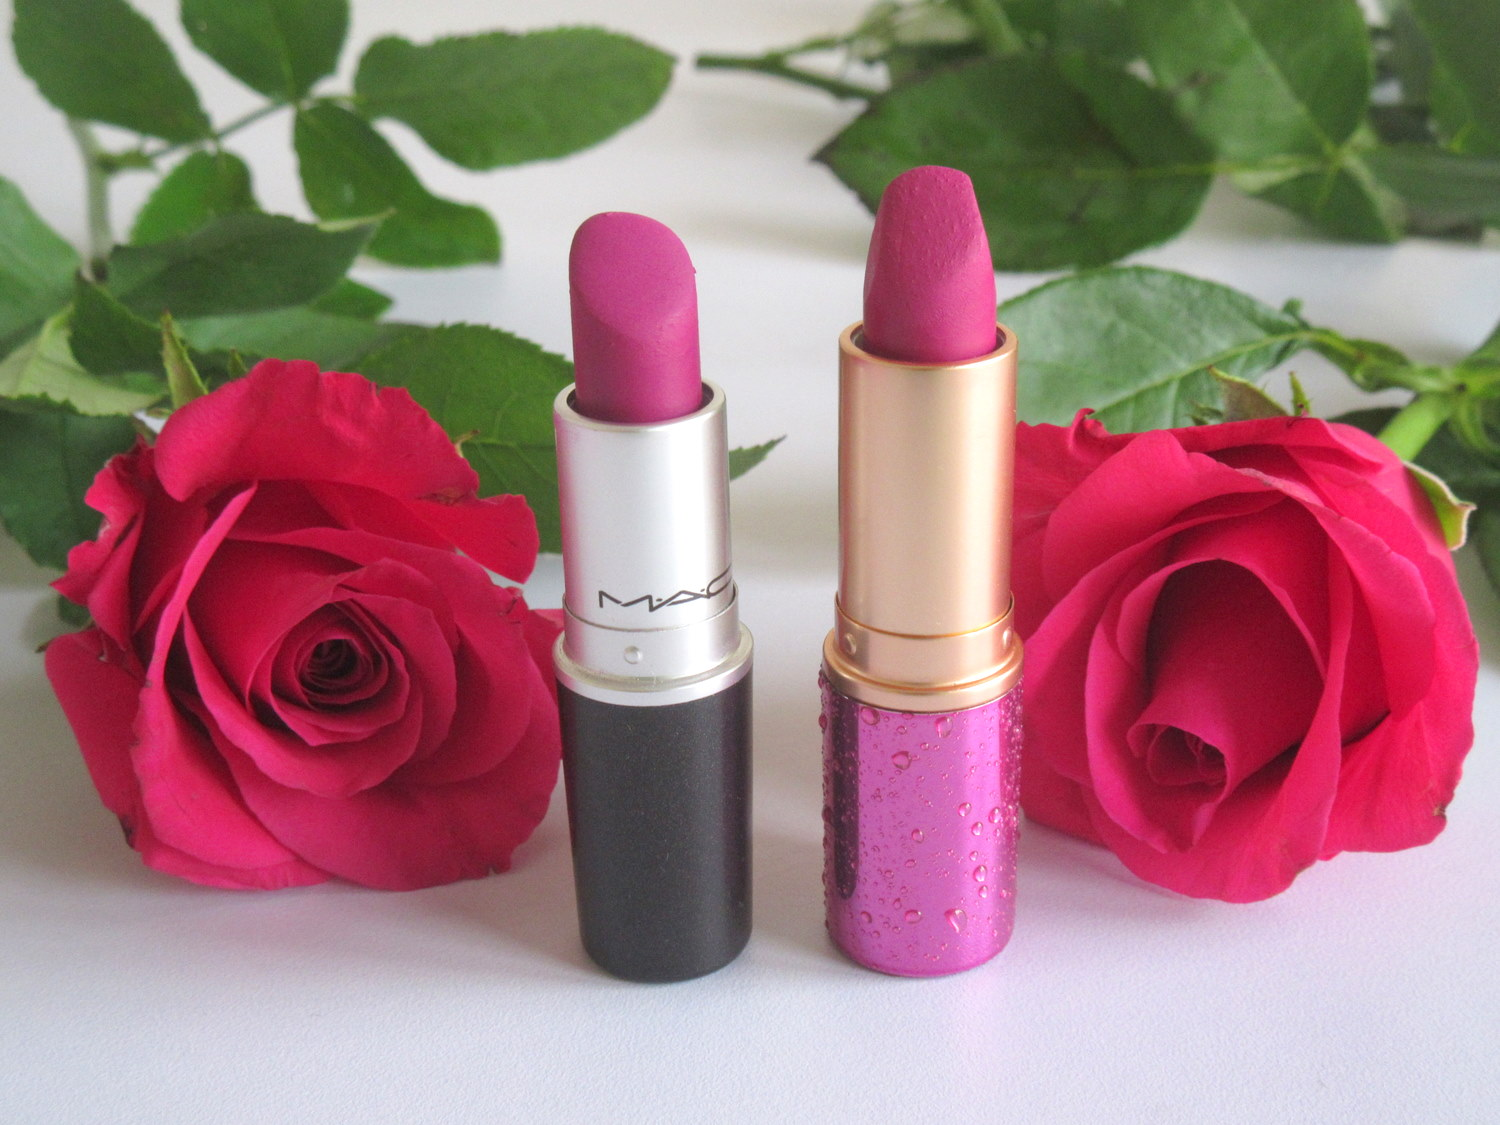 MAC Retro Matte Lipstick Flat Out Fabulous, Colorbar Feel The Rain Matte Lipstick in Shower